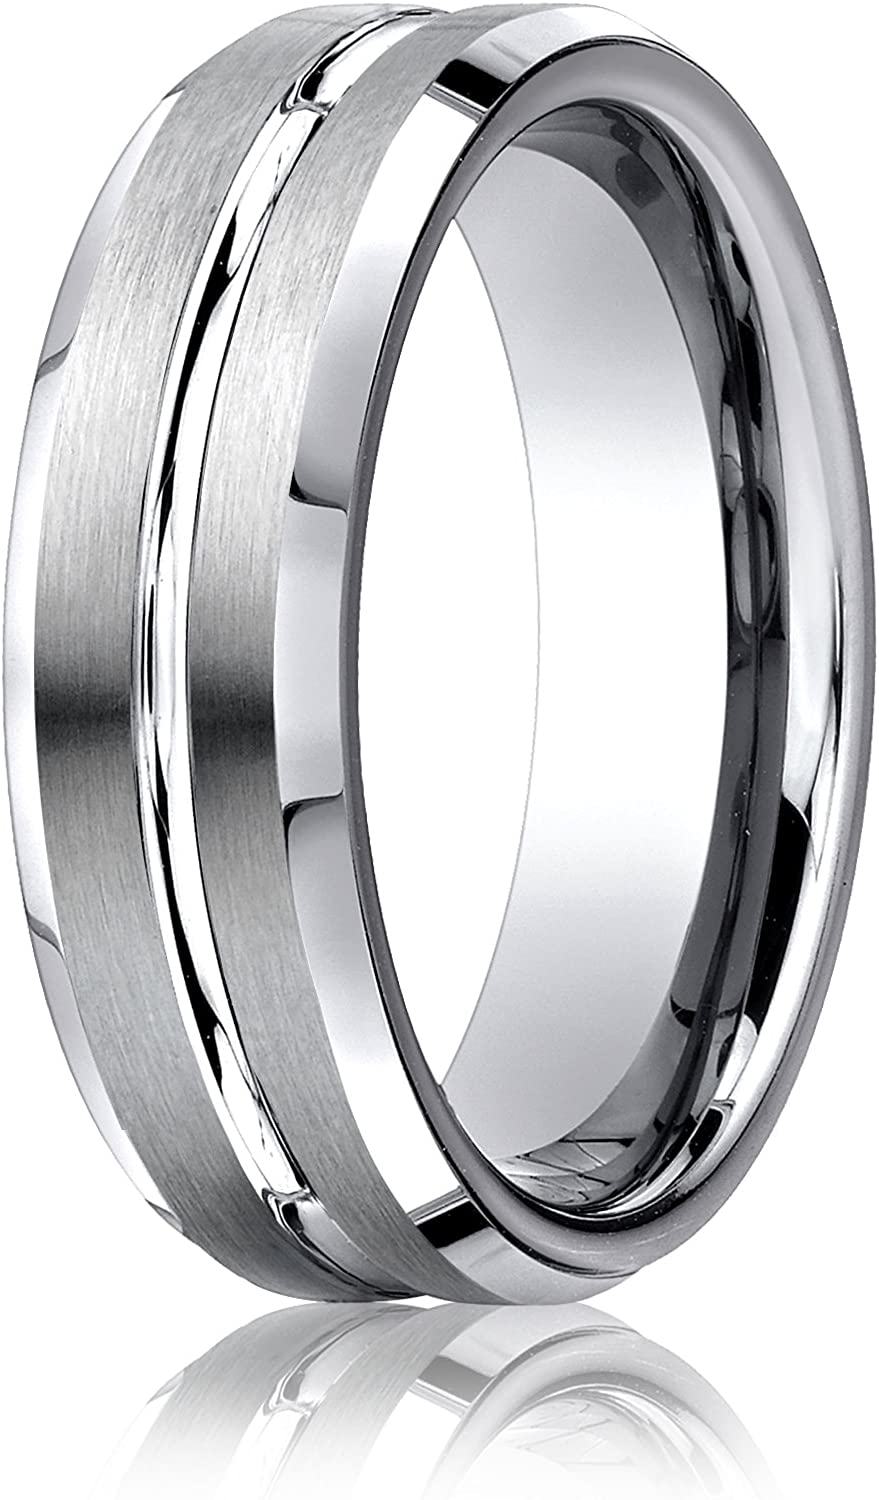 Wedding Bands Classic Bands Domed Bands w//Edge Titanium Ridged Edge 6mm Satin and Polished Band Size 9.5